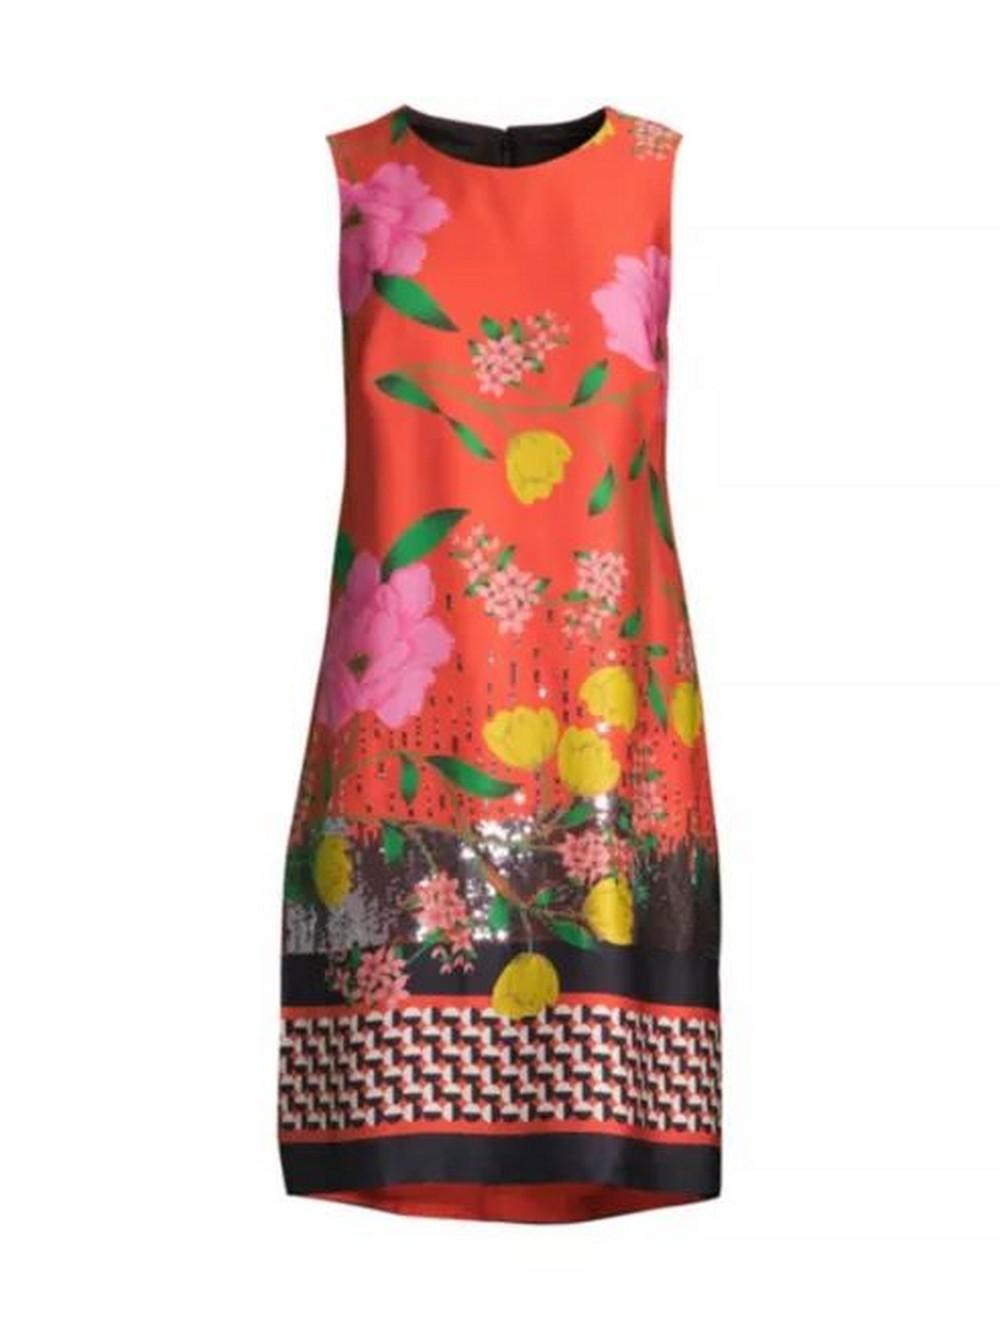 Bonnie Floral Shift Dress